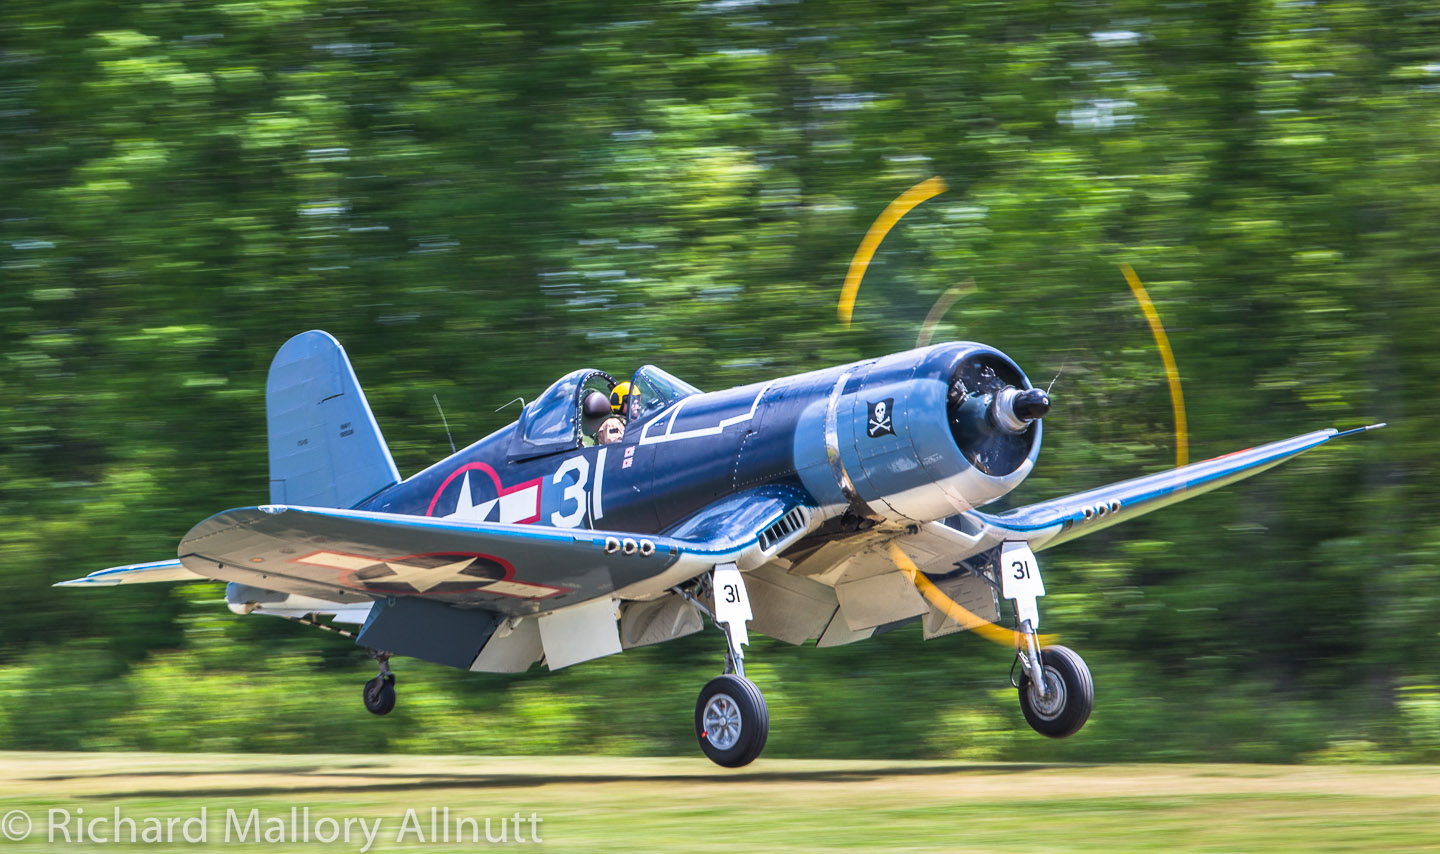 _C8A9842 - Richard Mallory Allnutt photo - Warbirds Over the Beach - Military Aviation Museum - Pungo, VA - May 17, 2014